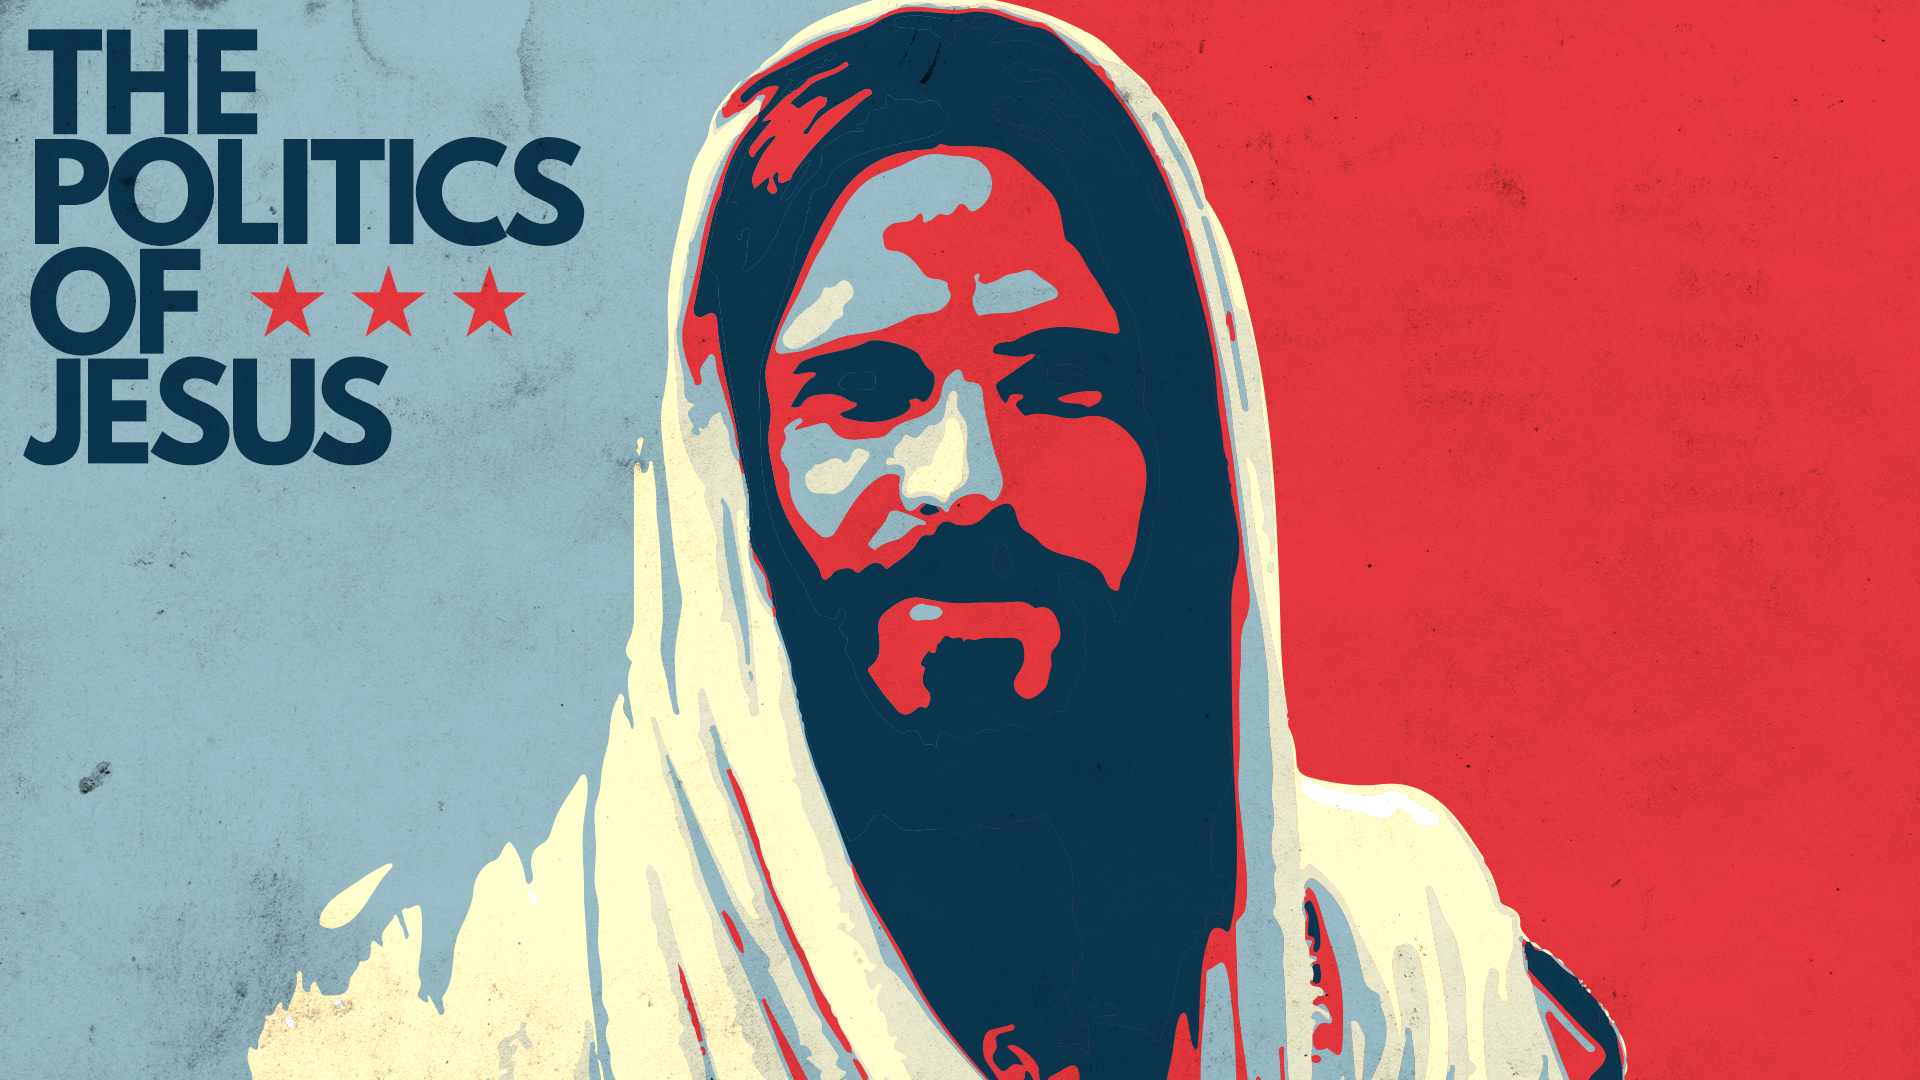 The Politics of Jesus - 1080.jpg